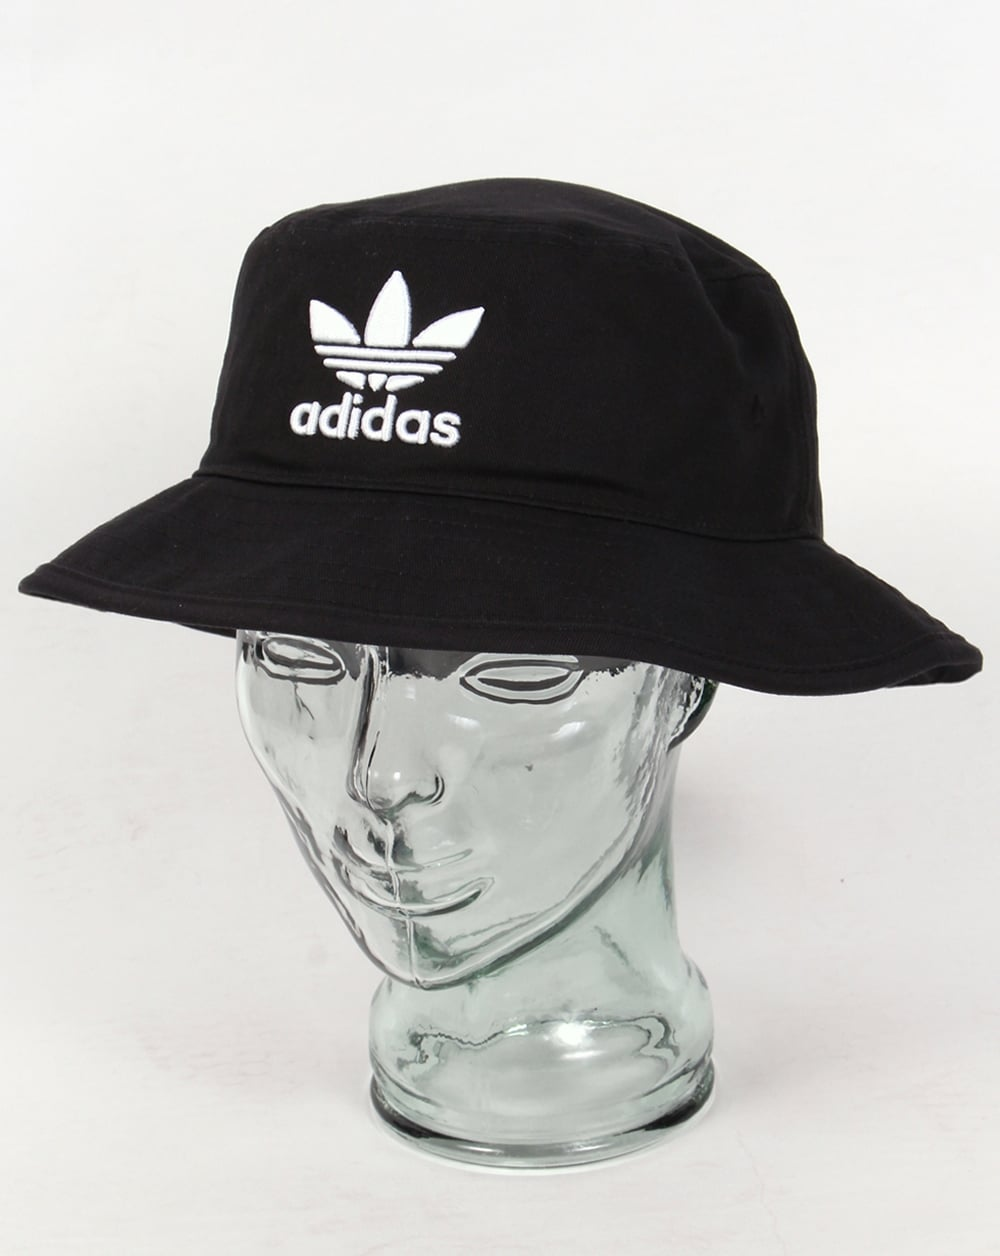 6514a53db09 Adidas Originals AC Bucket Hat Black